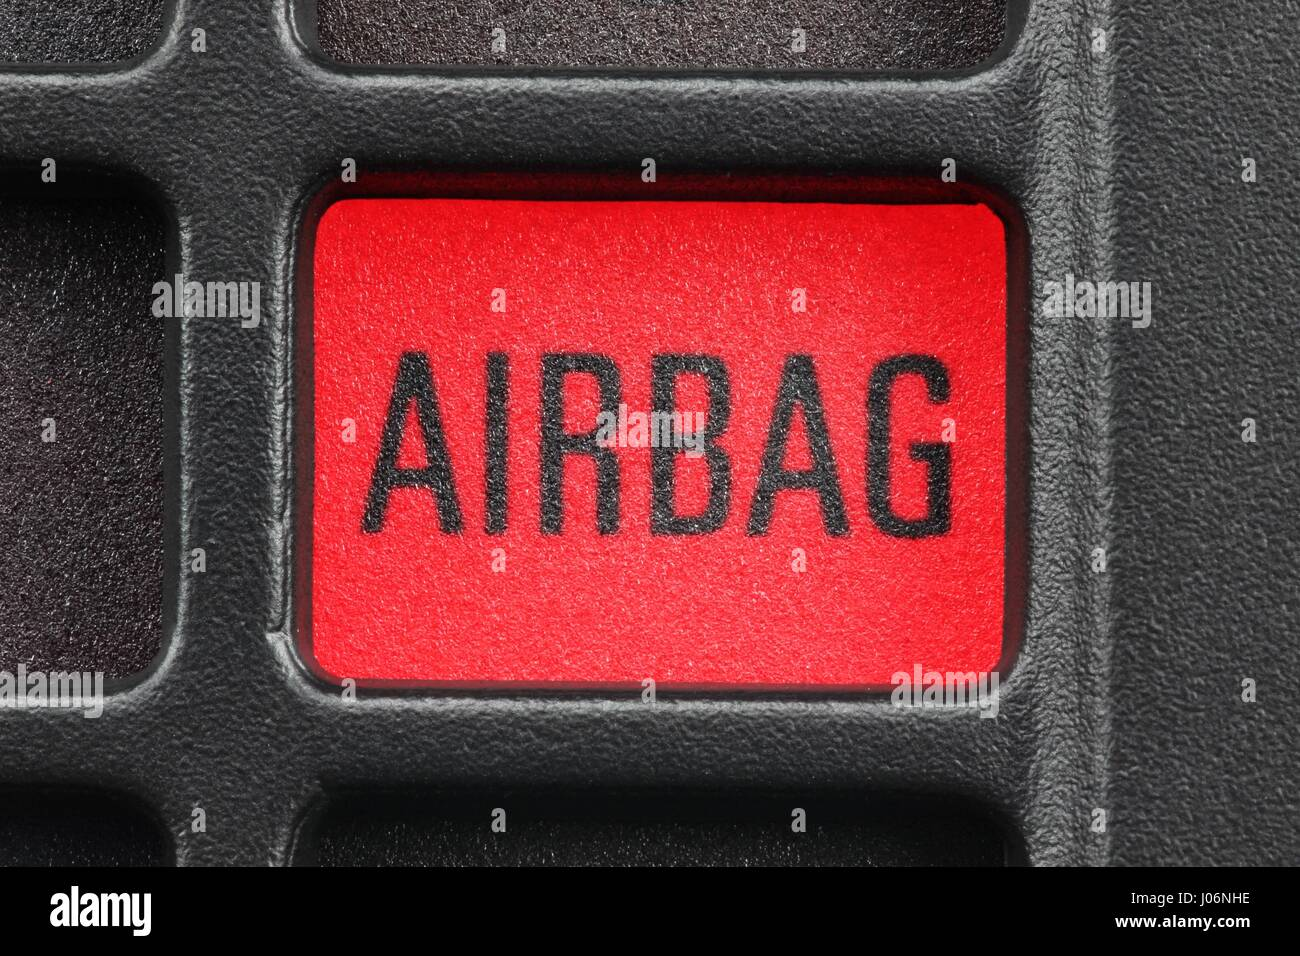 Airbag Warning Light In Car Dashboard Stock Photo Royalty Free - Car image sign of dashboarddashboard warning lights stock images royaltyfree images